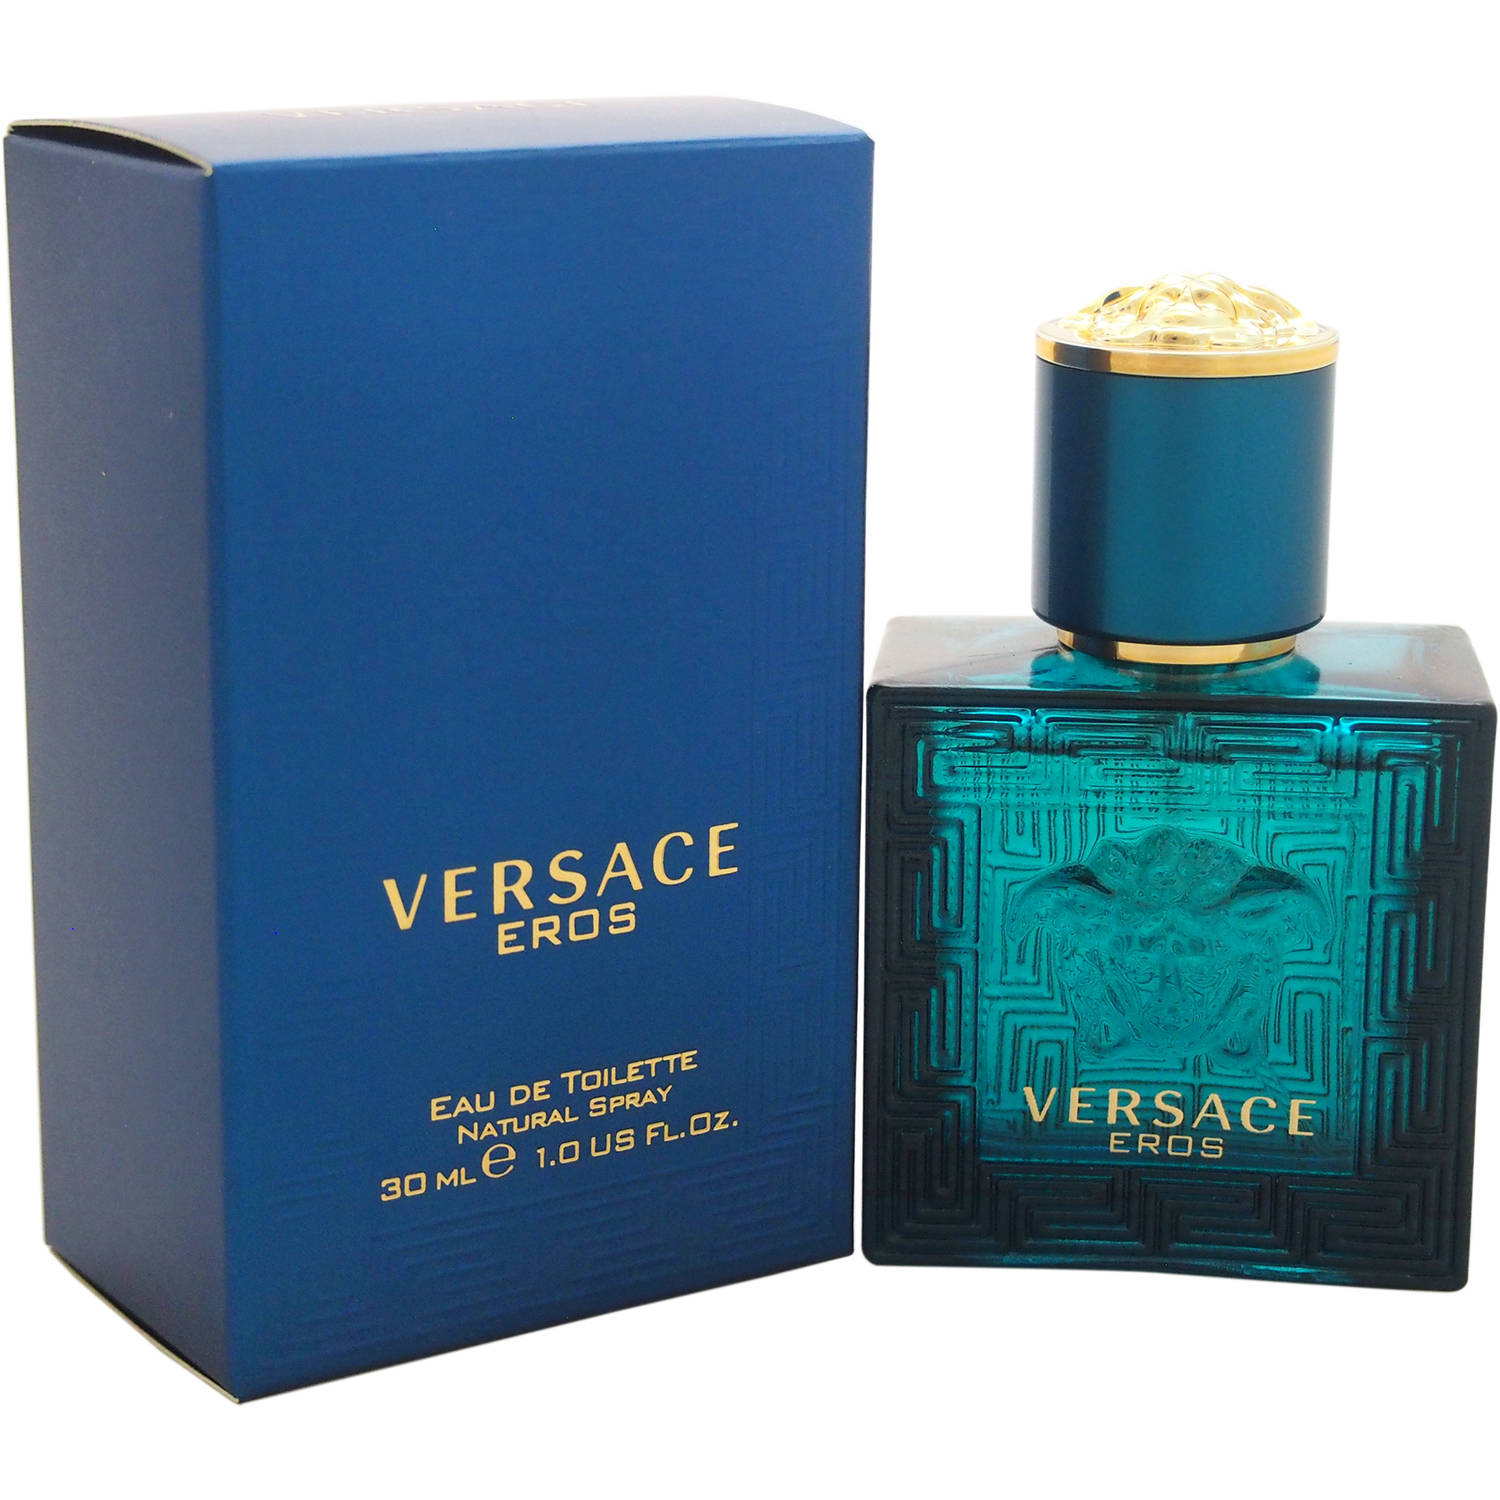 Versace Eros for Men Eau de Toilette, 1 oz